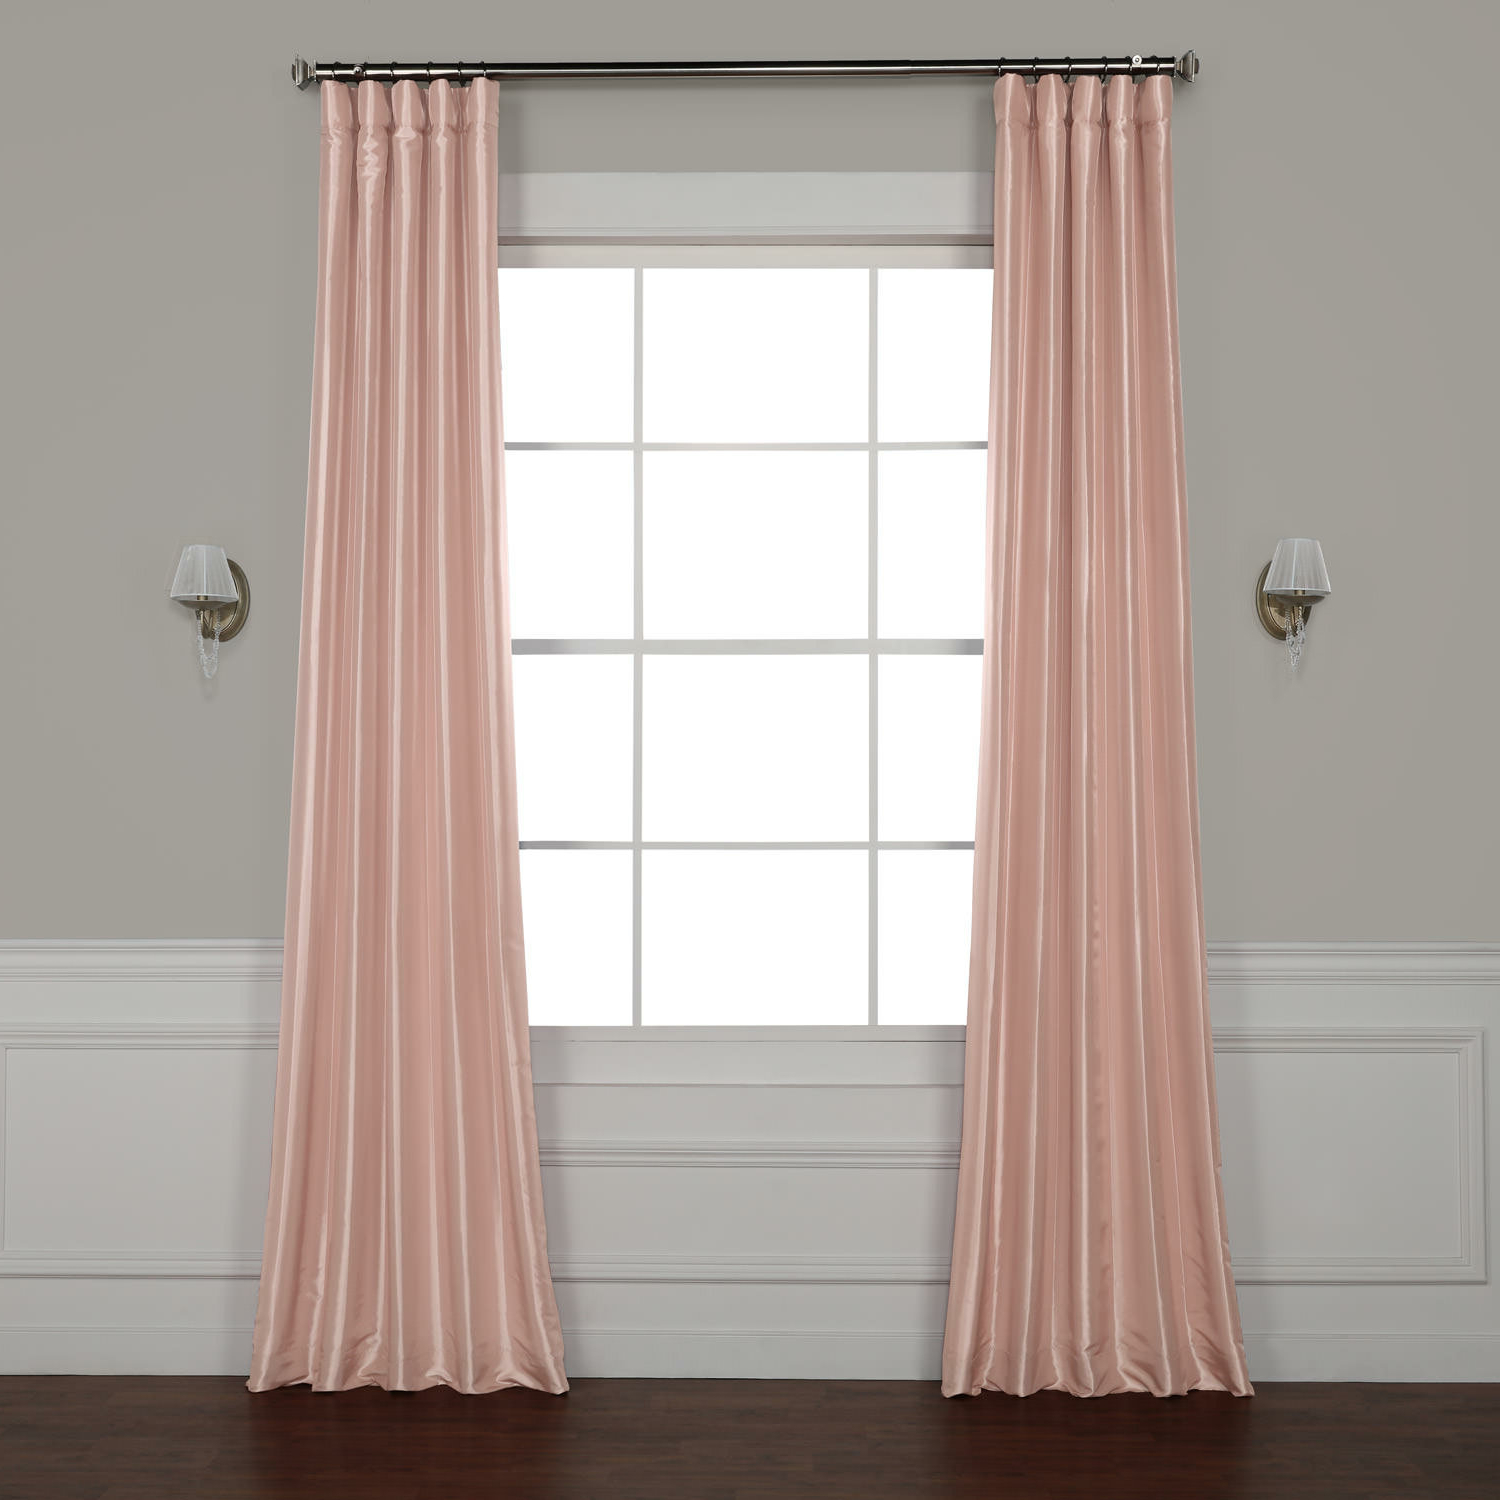 Most Current Lochleven Faux Silk Taffeta Solid Room Polyester Darkening Single Curtain Panel With Solid Faux Silk Taffeta Graphite Single Curtain Panels (View 11 of 20)